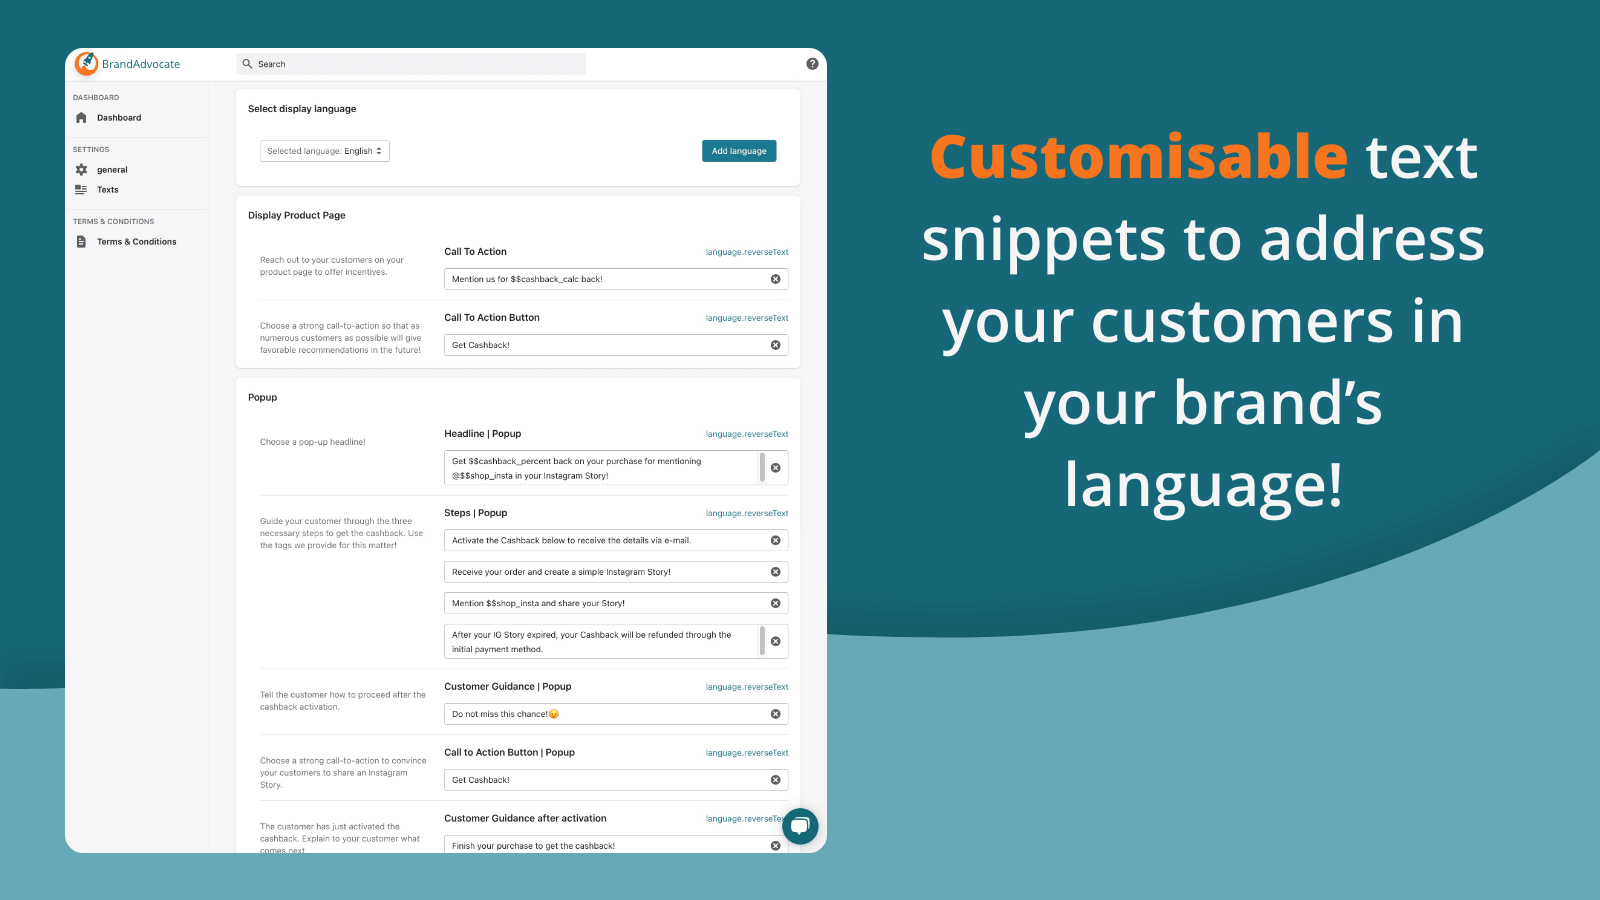 customisable social Proof to generate sales and brand awareness